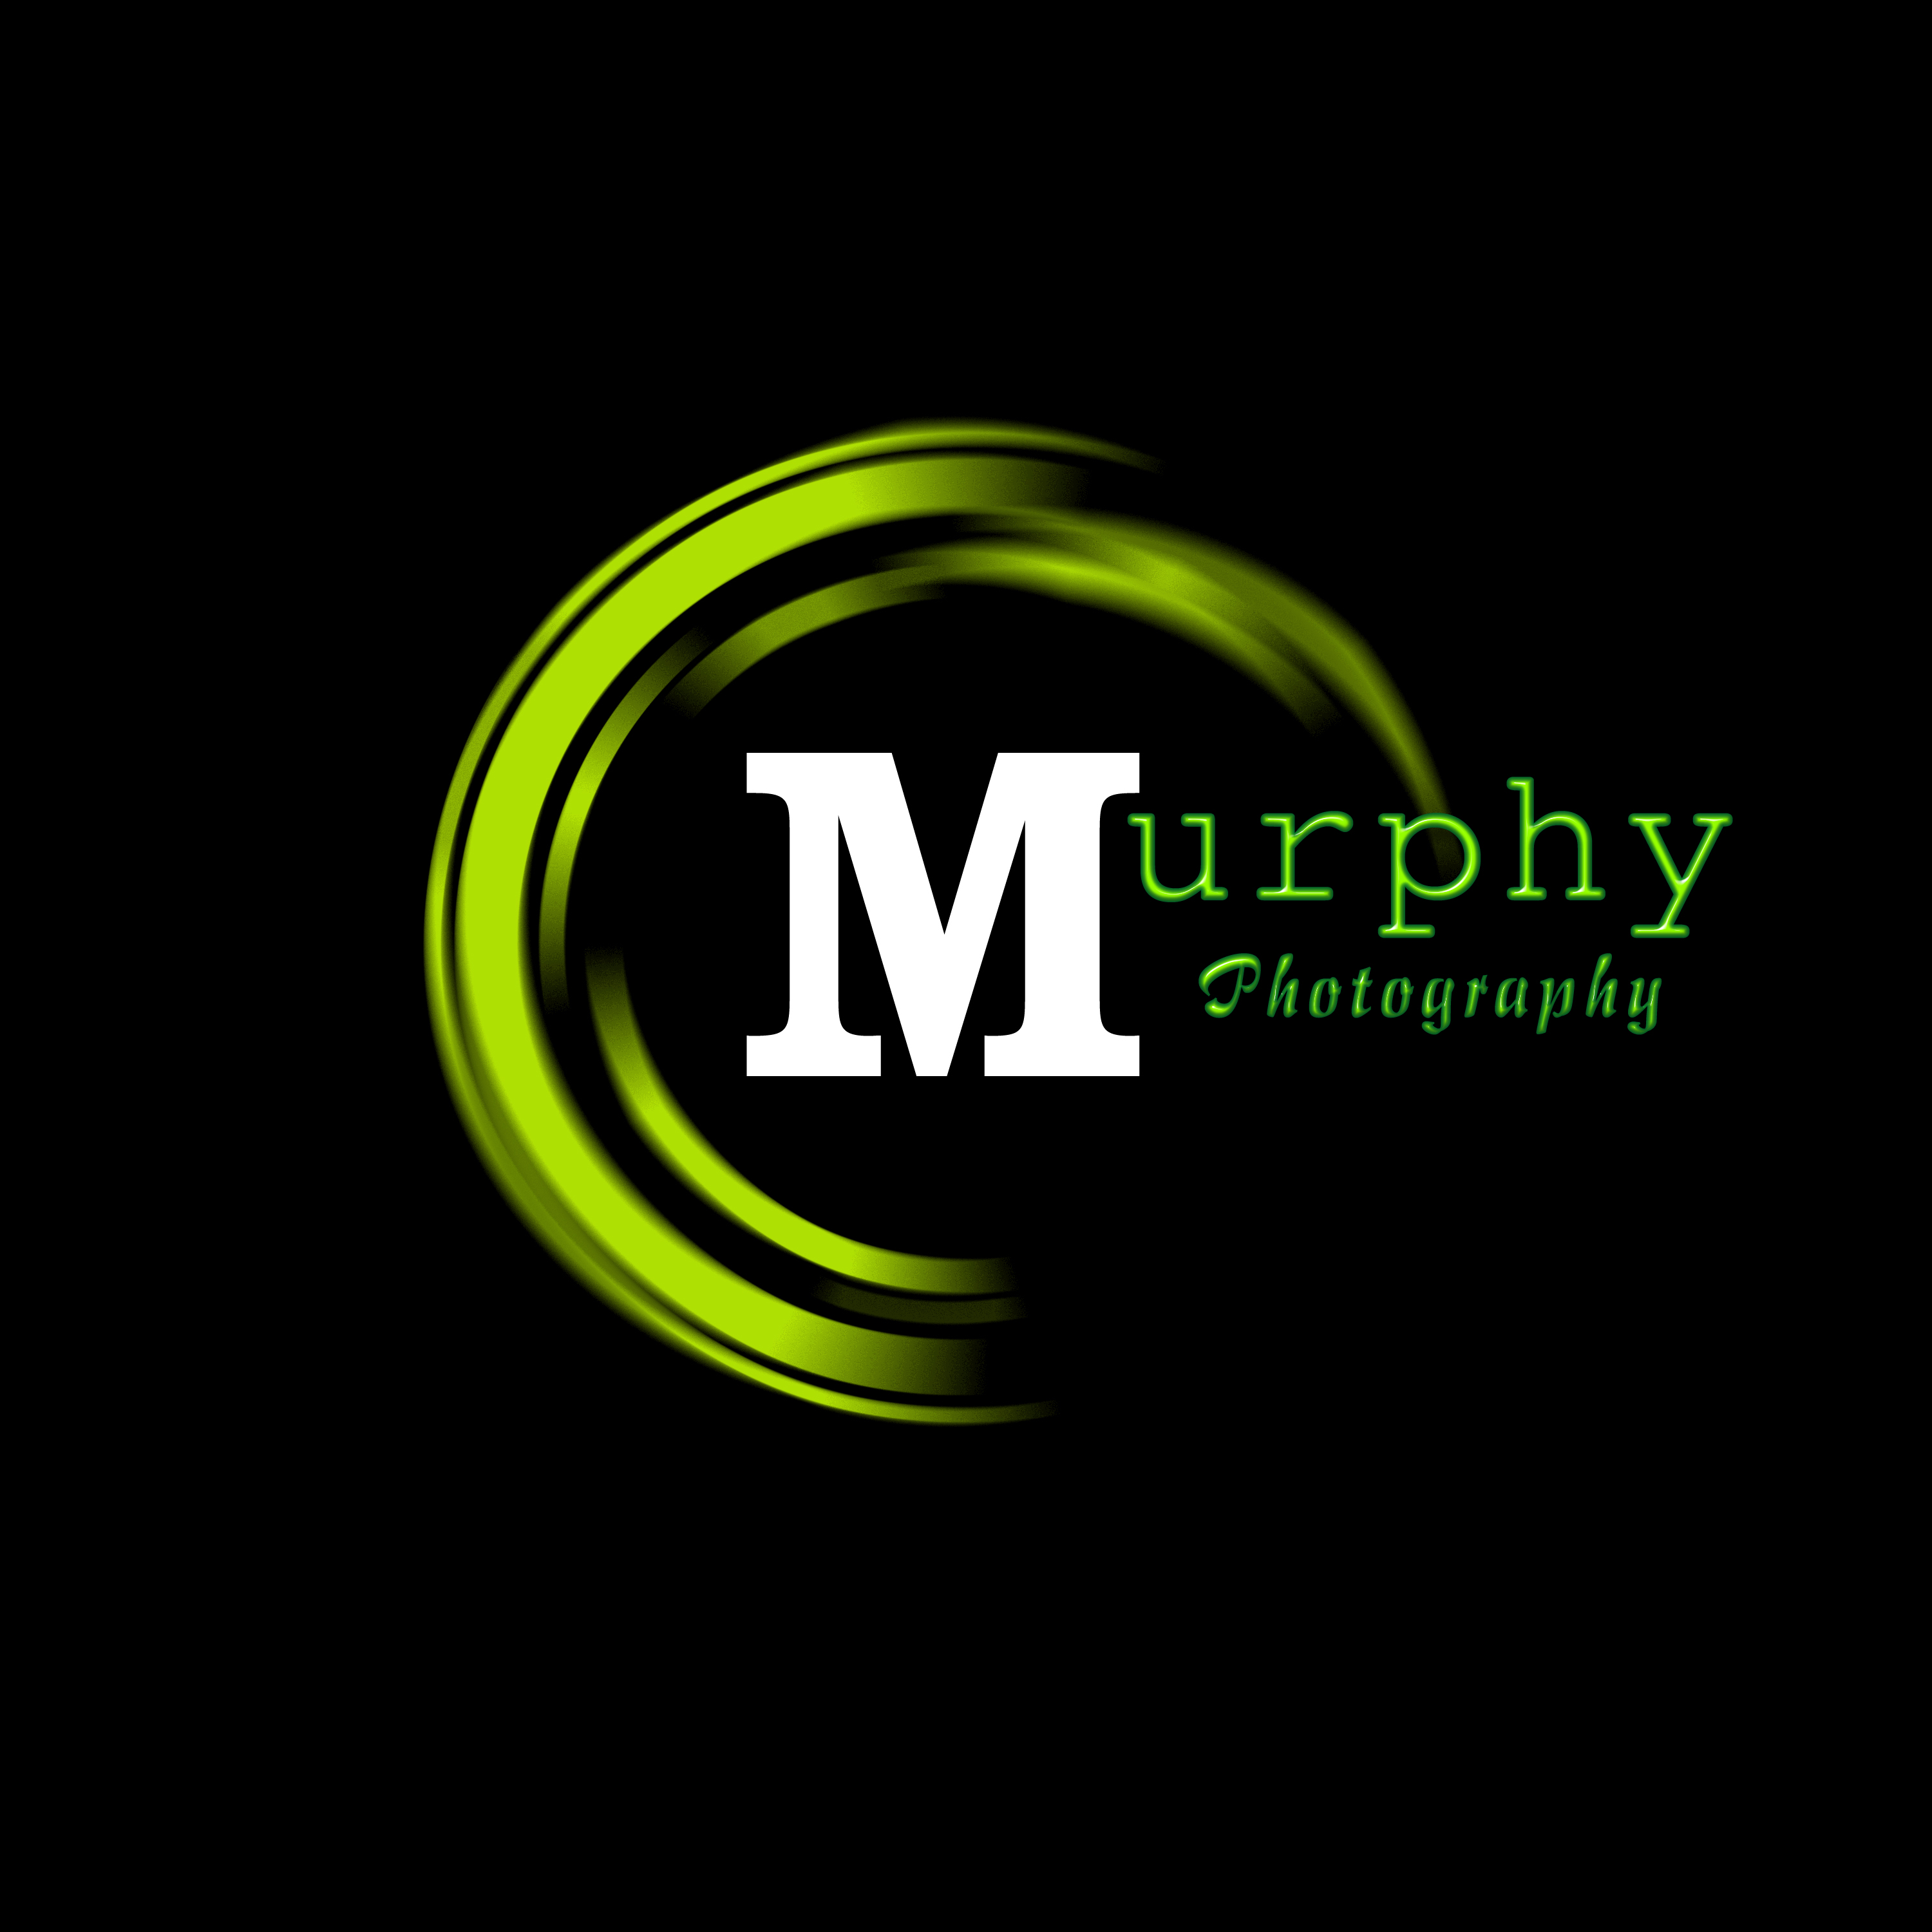 Murphy Photos.Net - Photography Services - Charlotte, NC